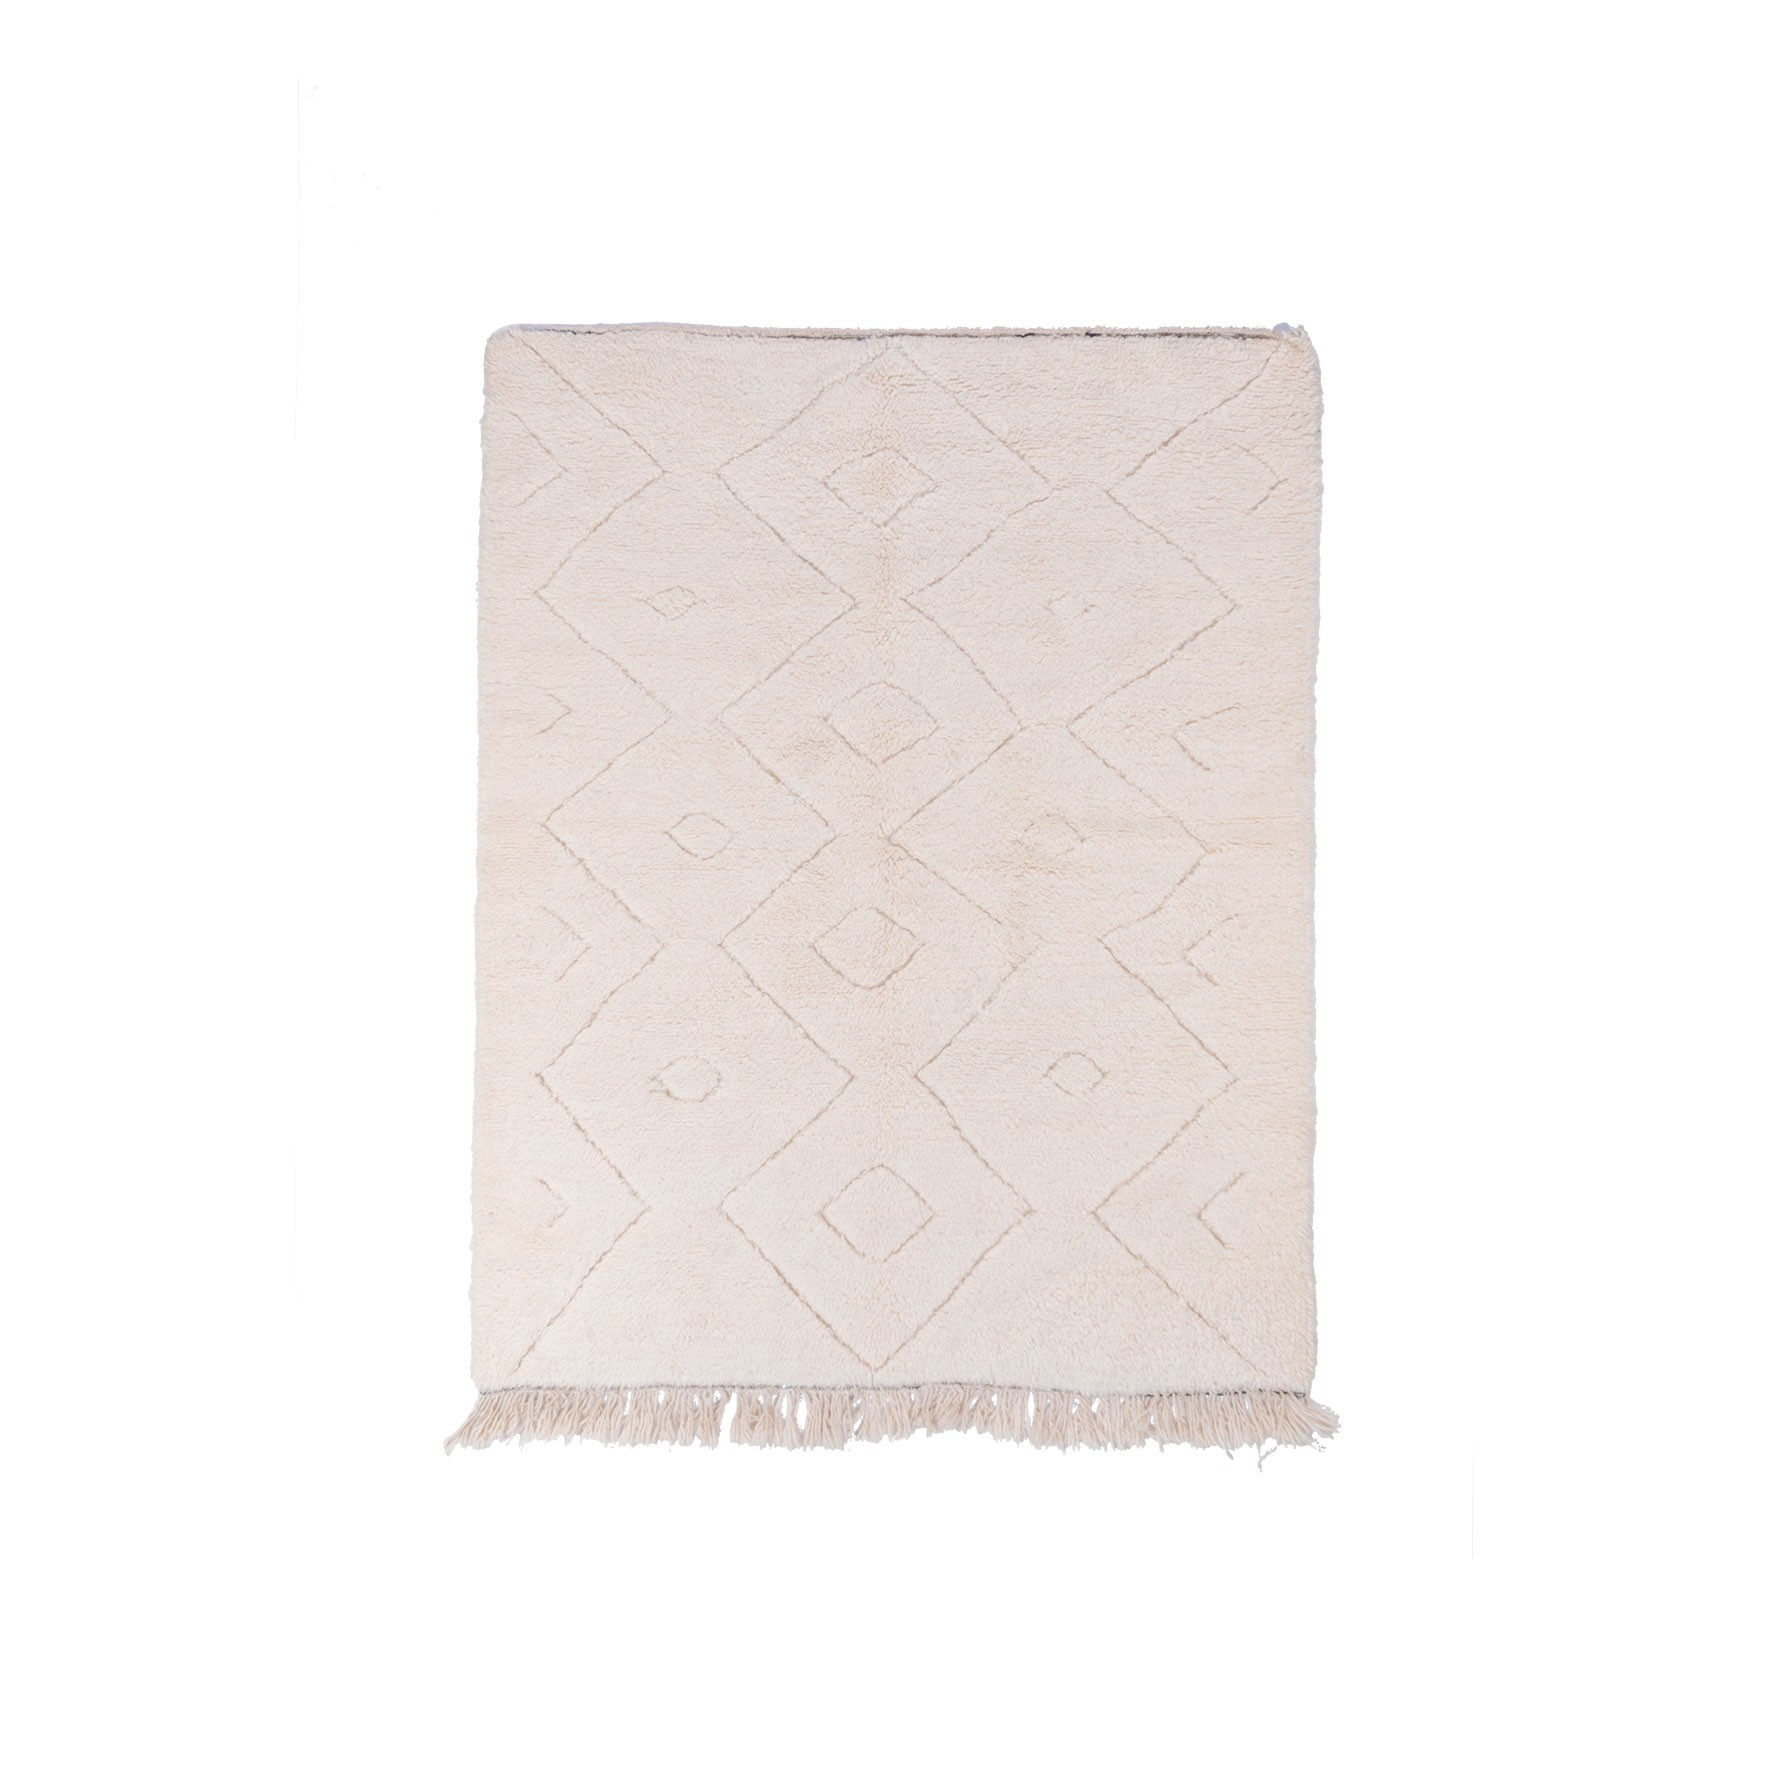 Beni Ouarain rug Uni white background frieze patterns in relief